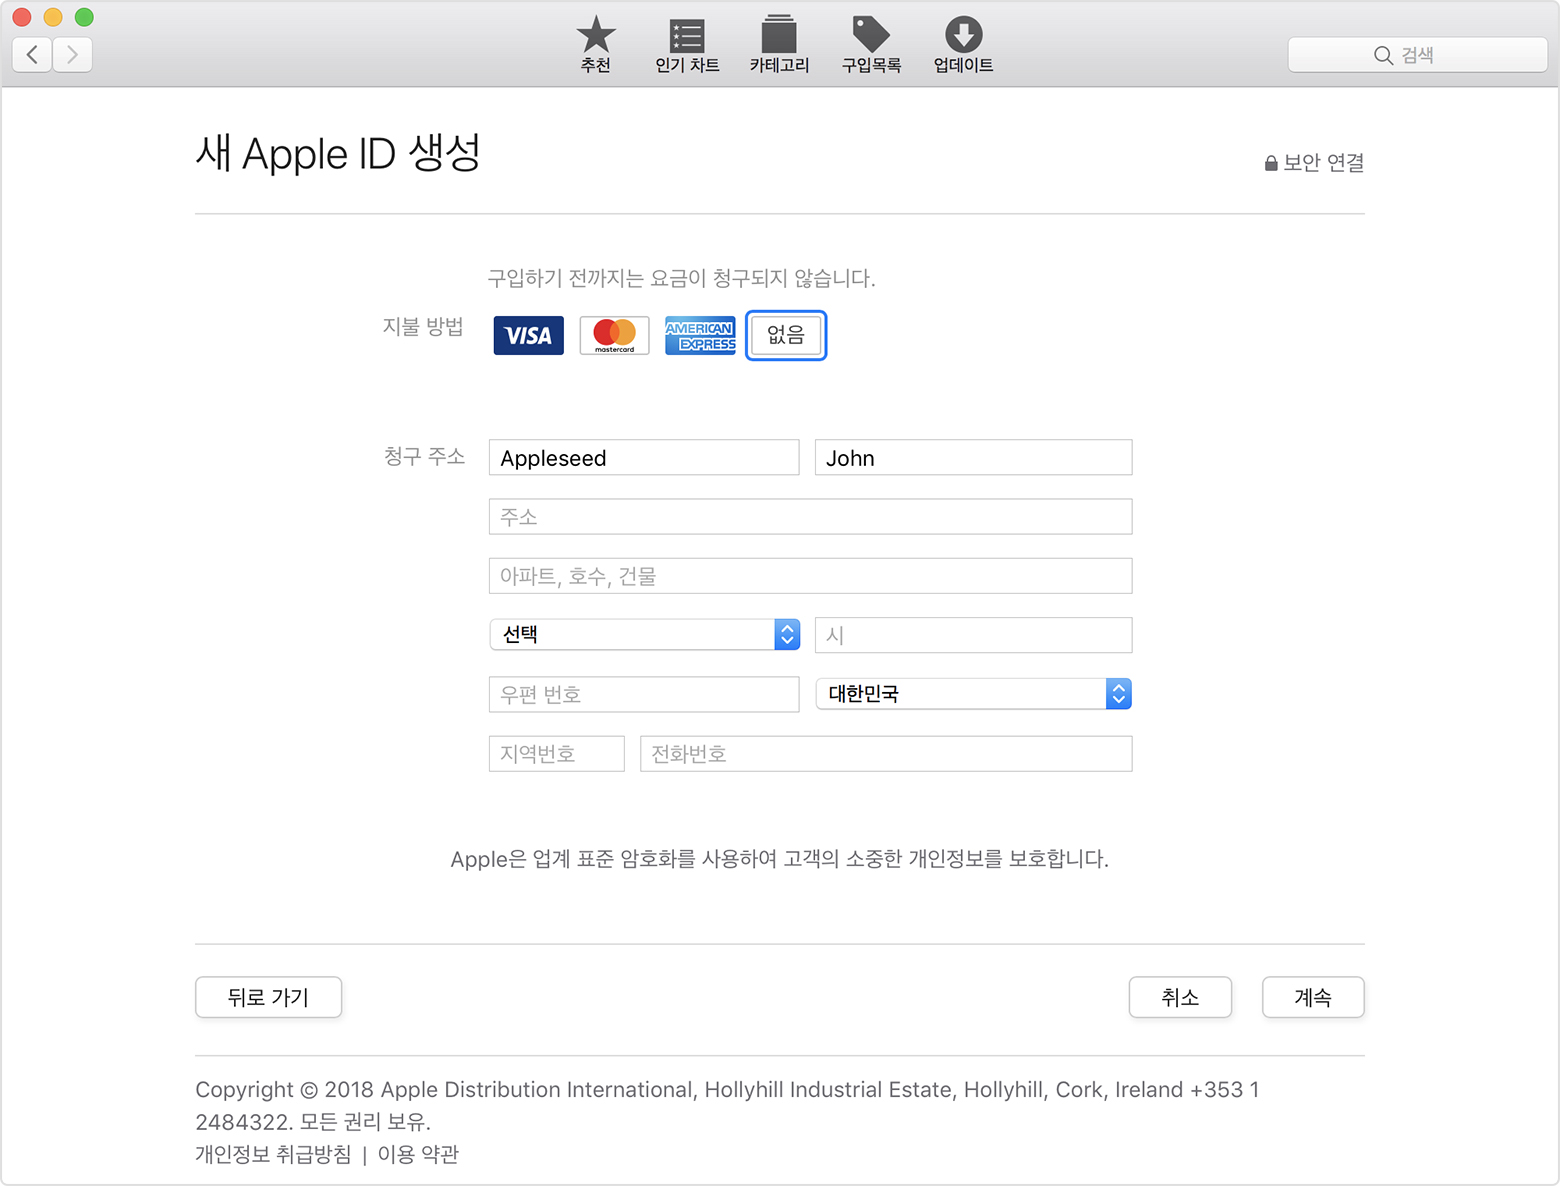 Mac App Store의 Apple ID 생성 화면